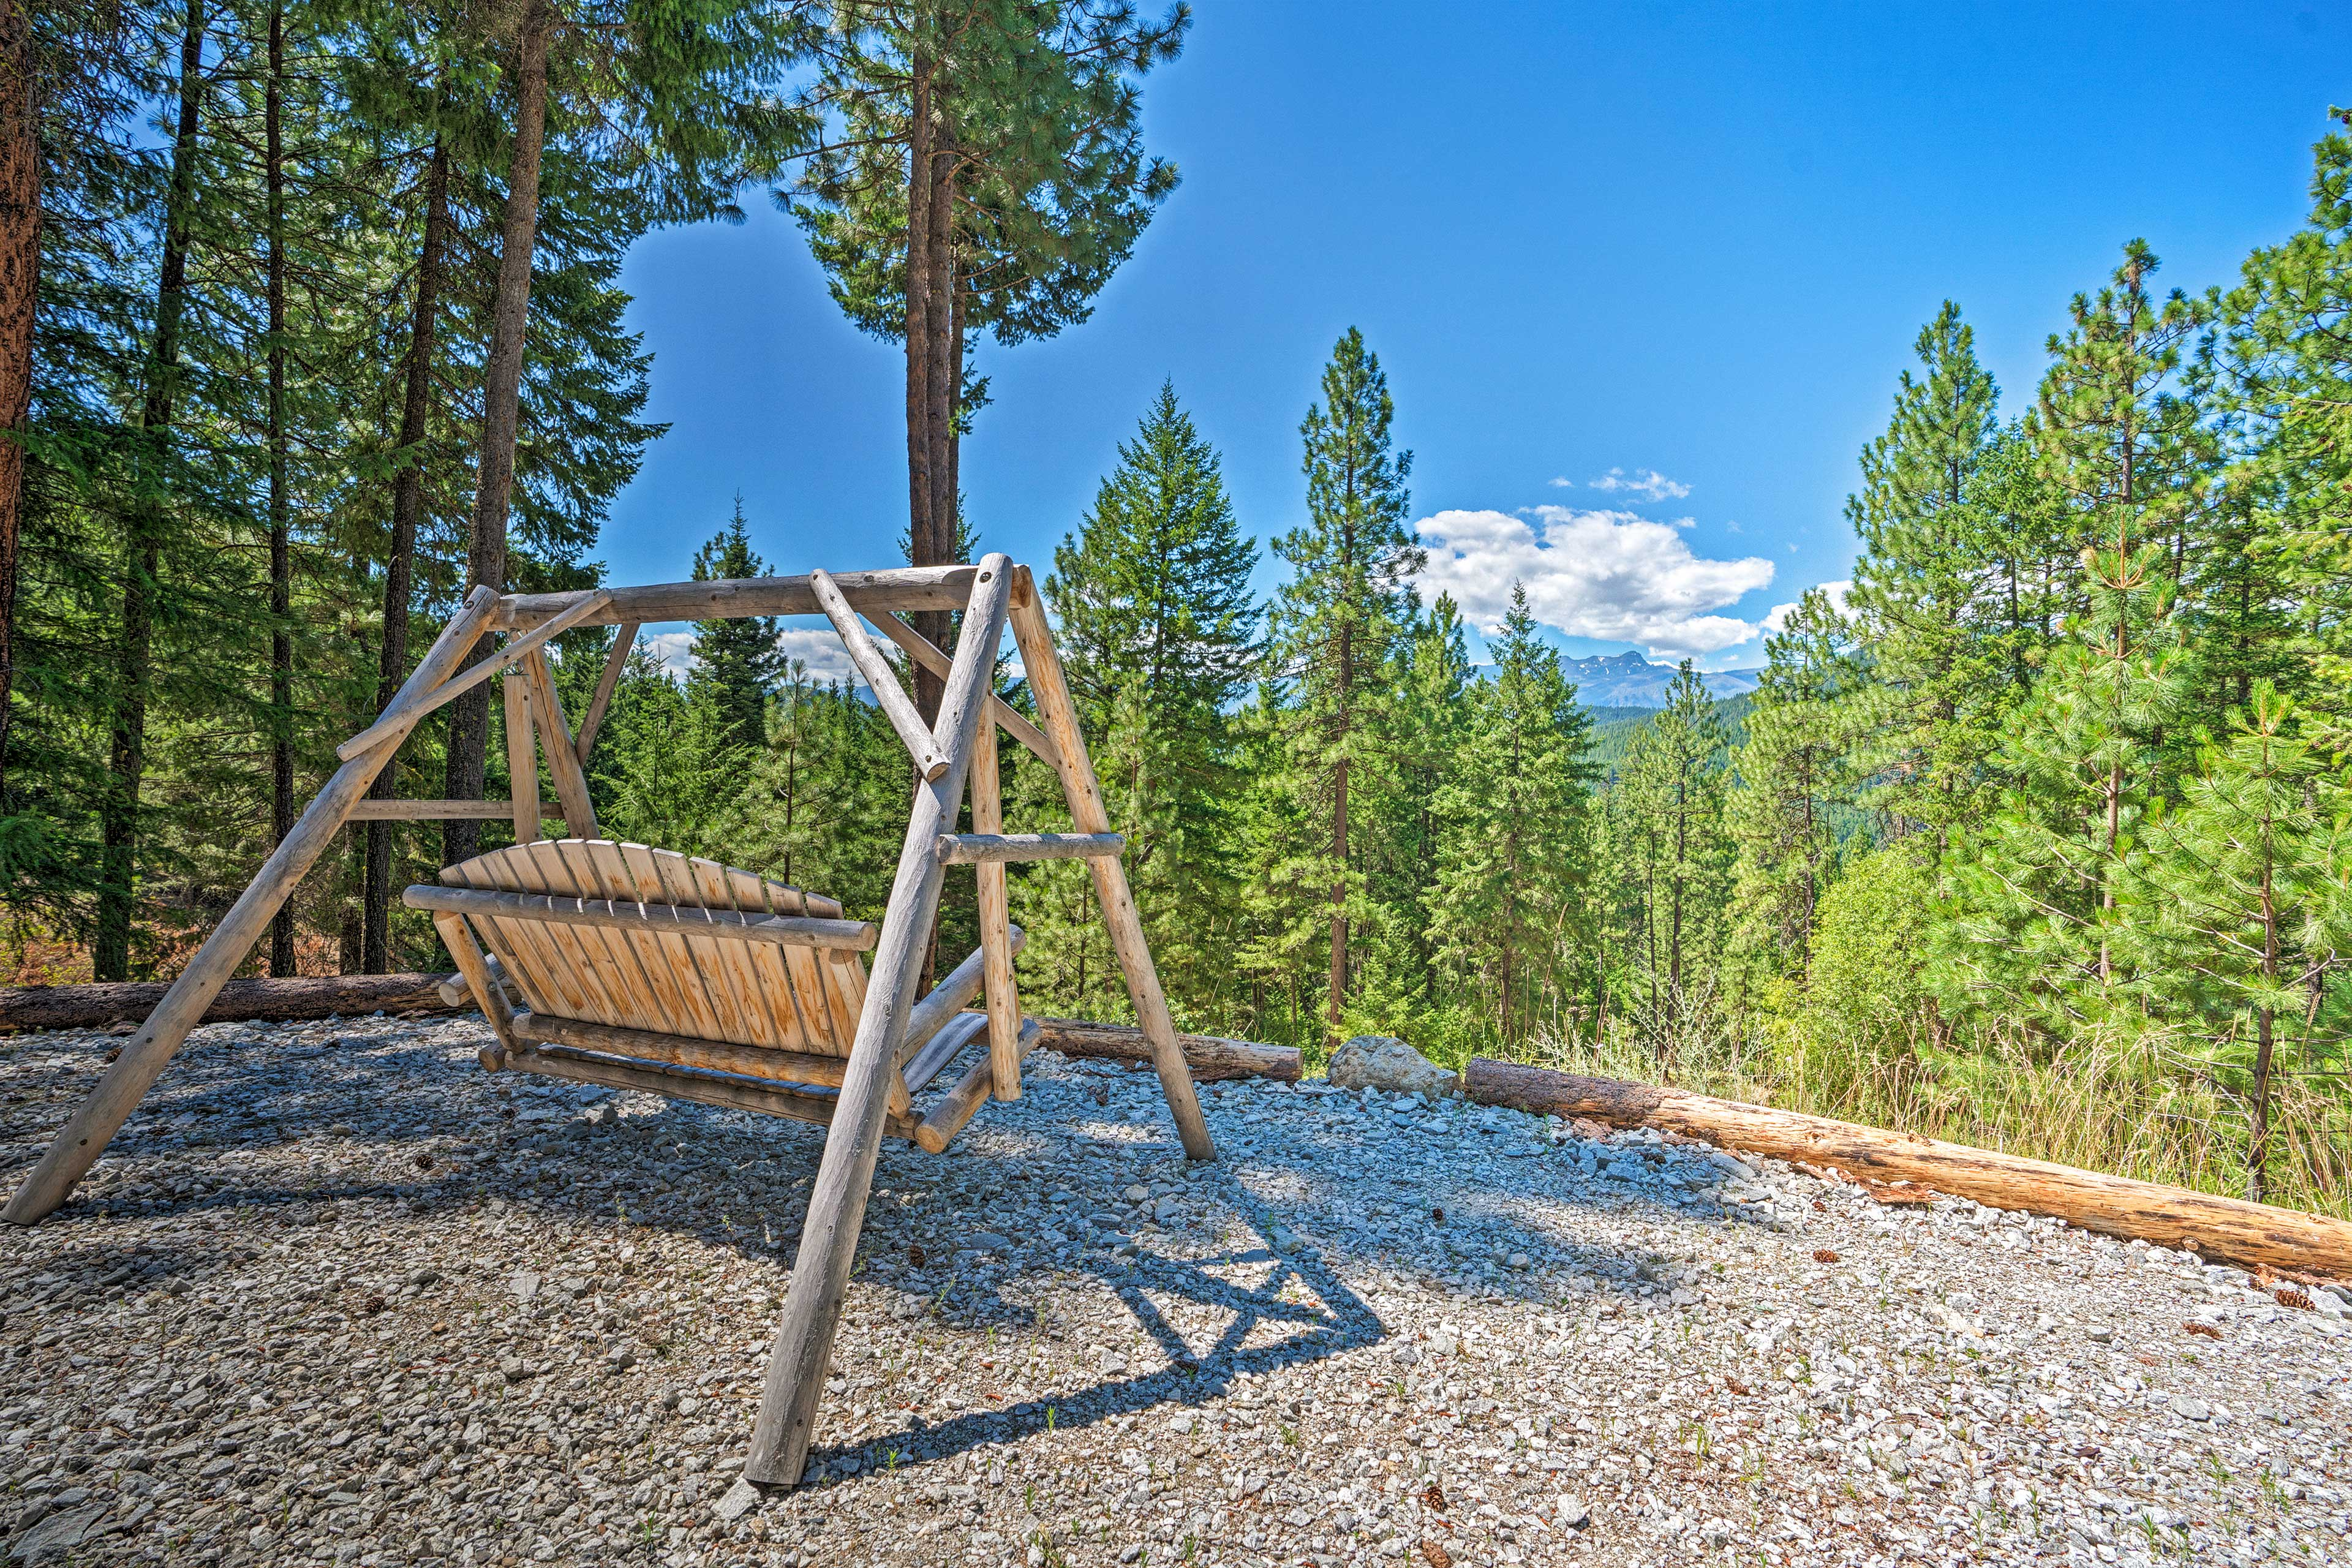 Rock your cares away on the bench swing.